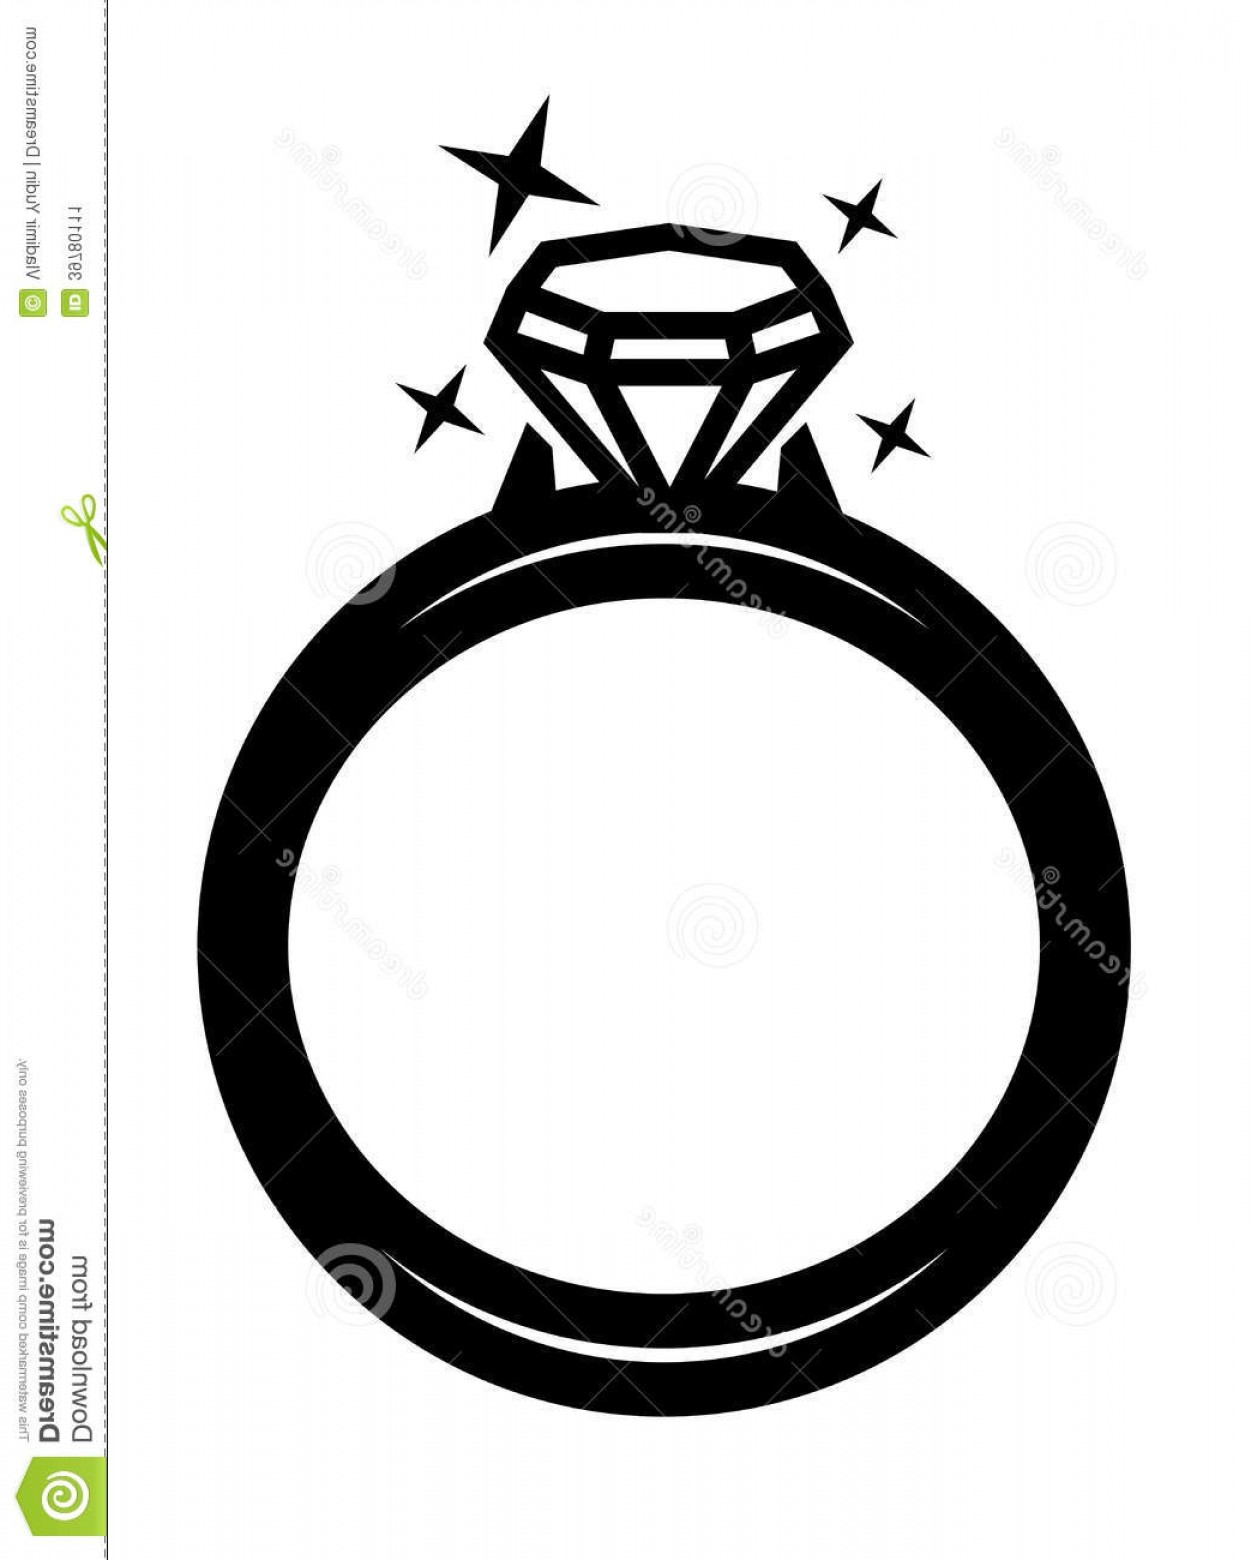 Black Diamond Vector Clip Art: Stock Image Vector Black Ring Diamond Icon White Backgorund Image